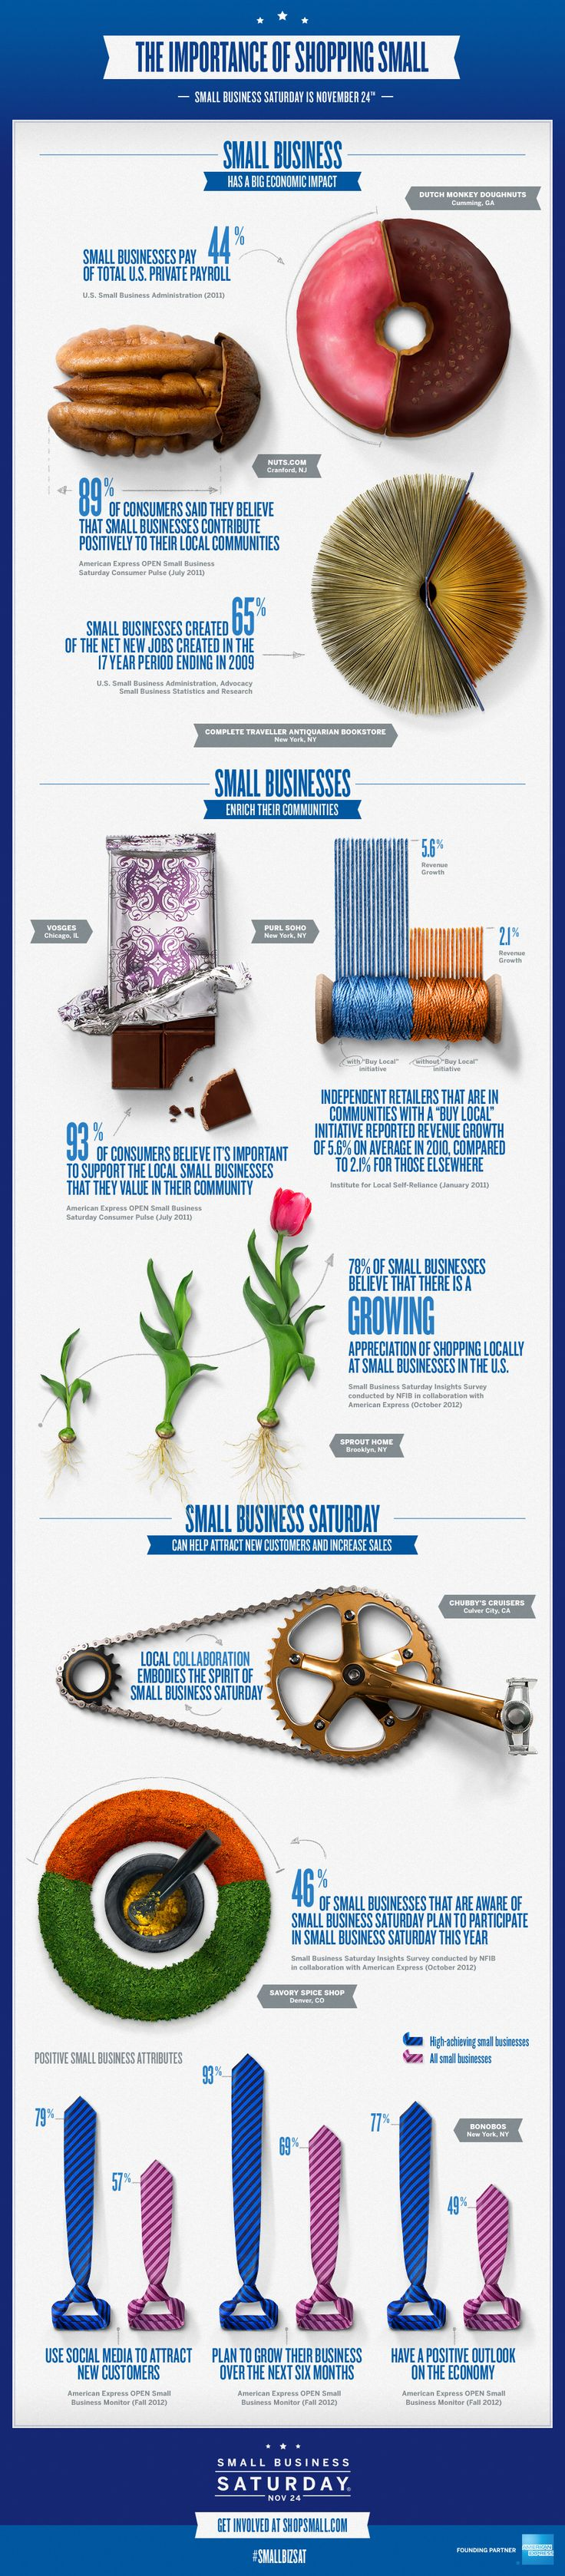 Importance of Shopping Small / Shop Small {don't forget to shop small on nov 24!}